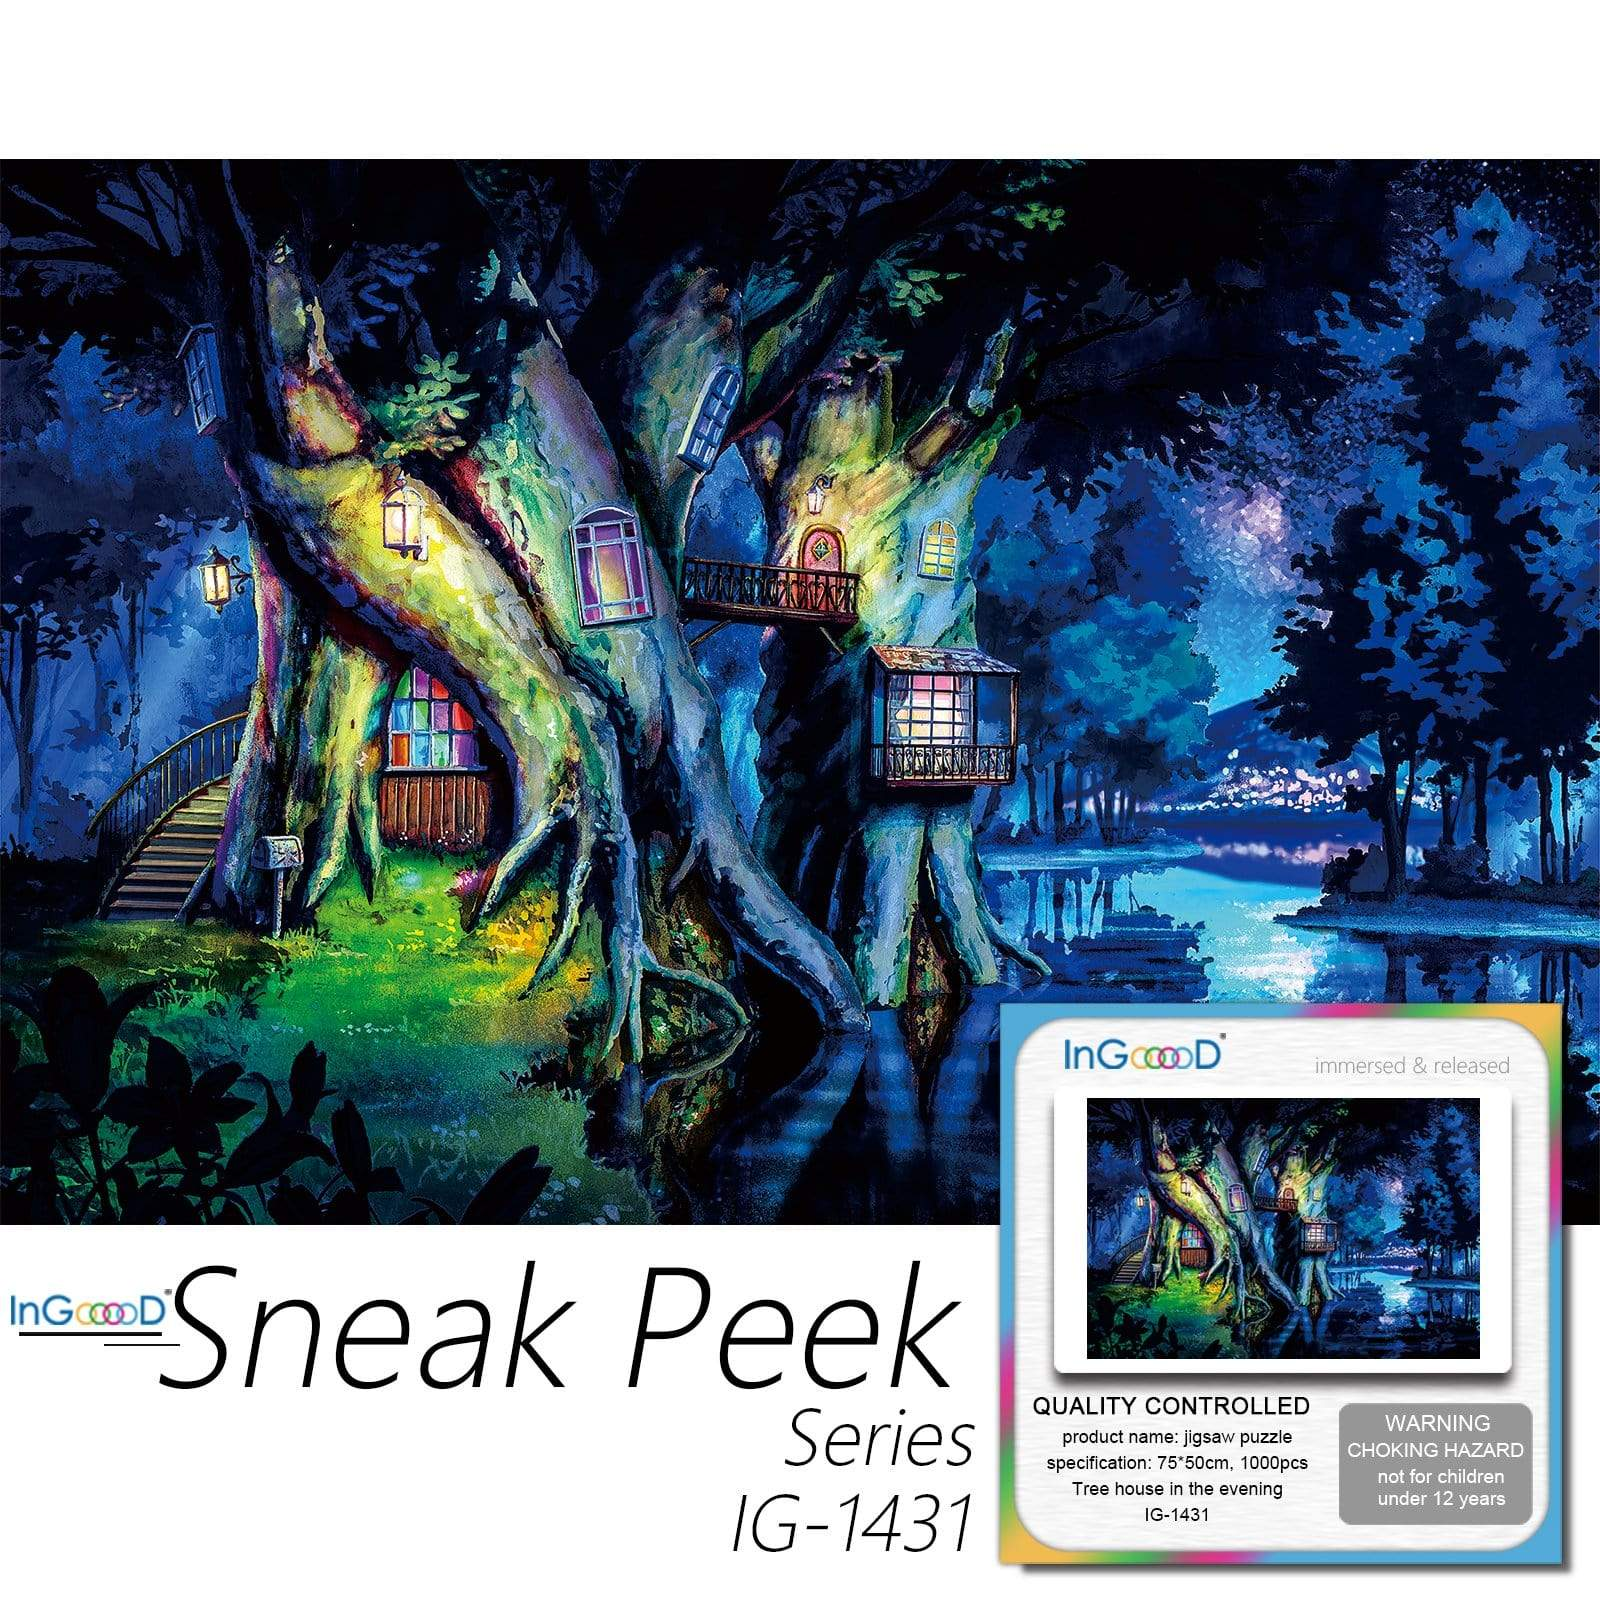 Ingooood-Jigsaw Puzzle 1000 Pieces-Sneak Peek Series-Tree house in the evening_IG-1431 Entertainment Toys for Adult Graduation or Birthday Gift Home Decor - Ingooood